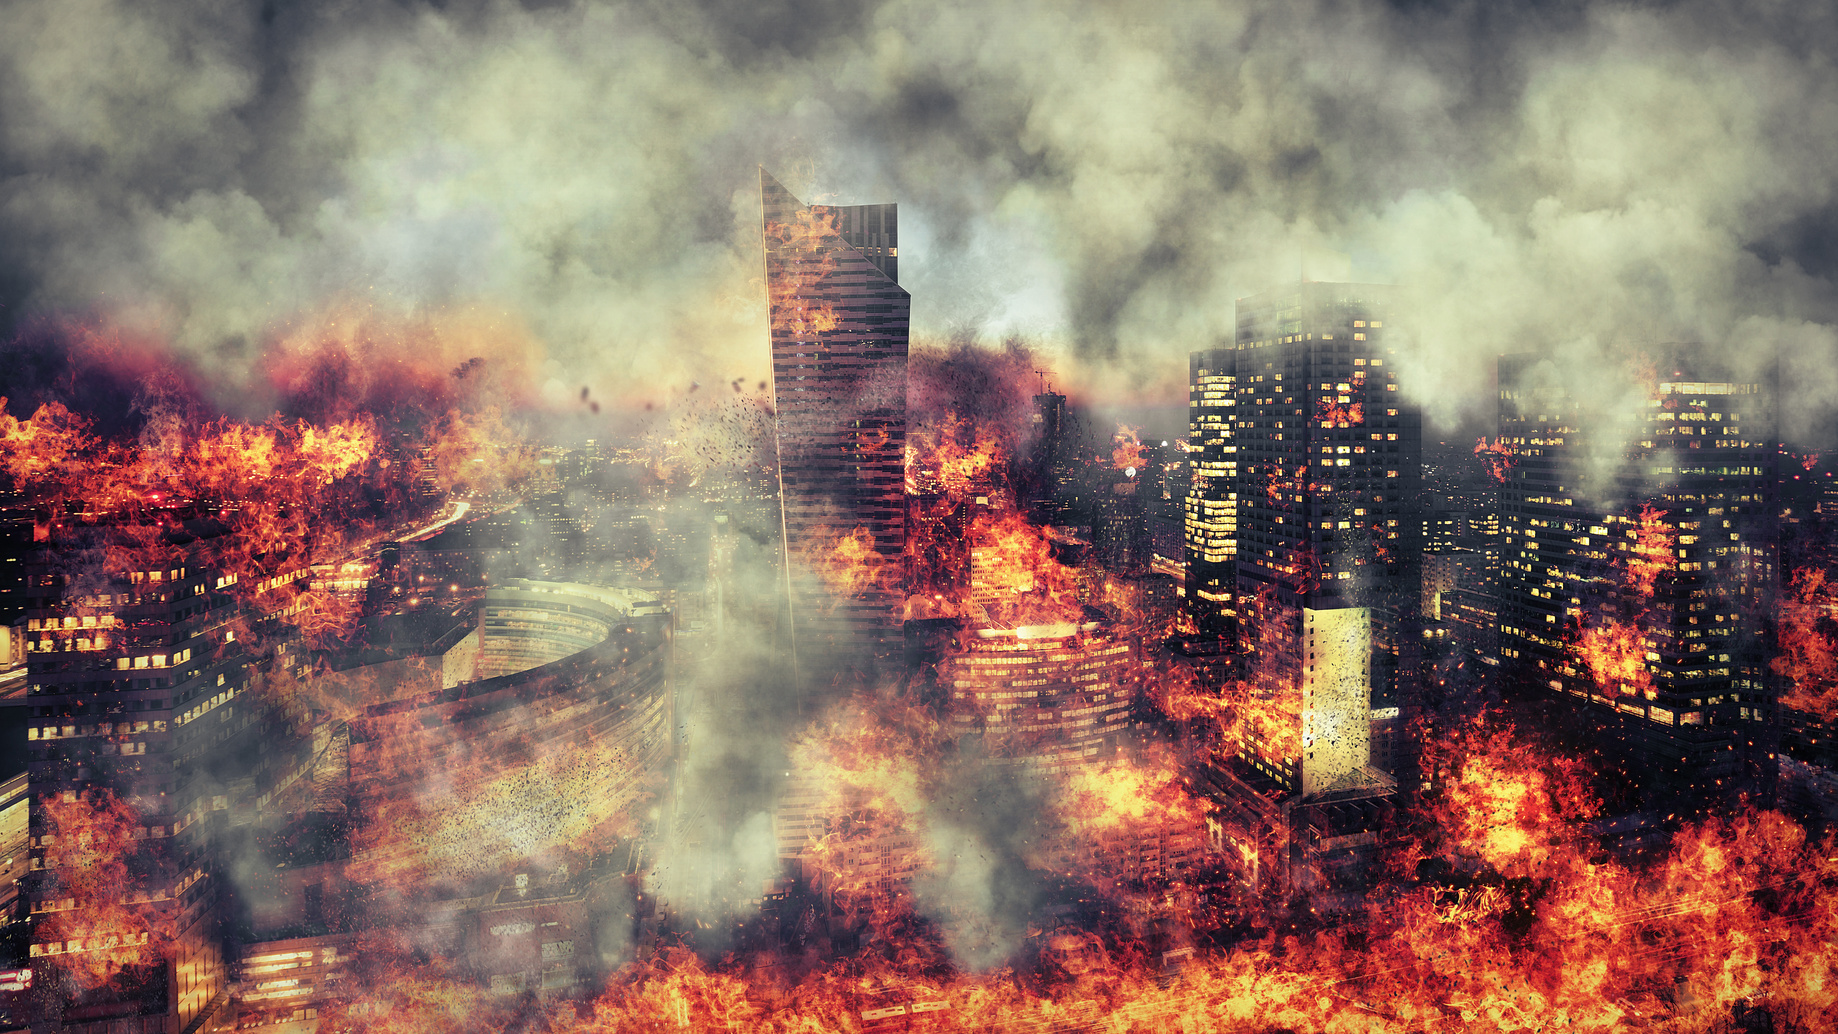 In 2004, one of the deadliest fires occurred in the capital city of Paraguay.